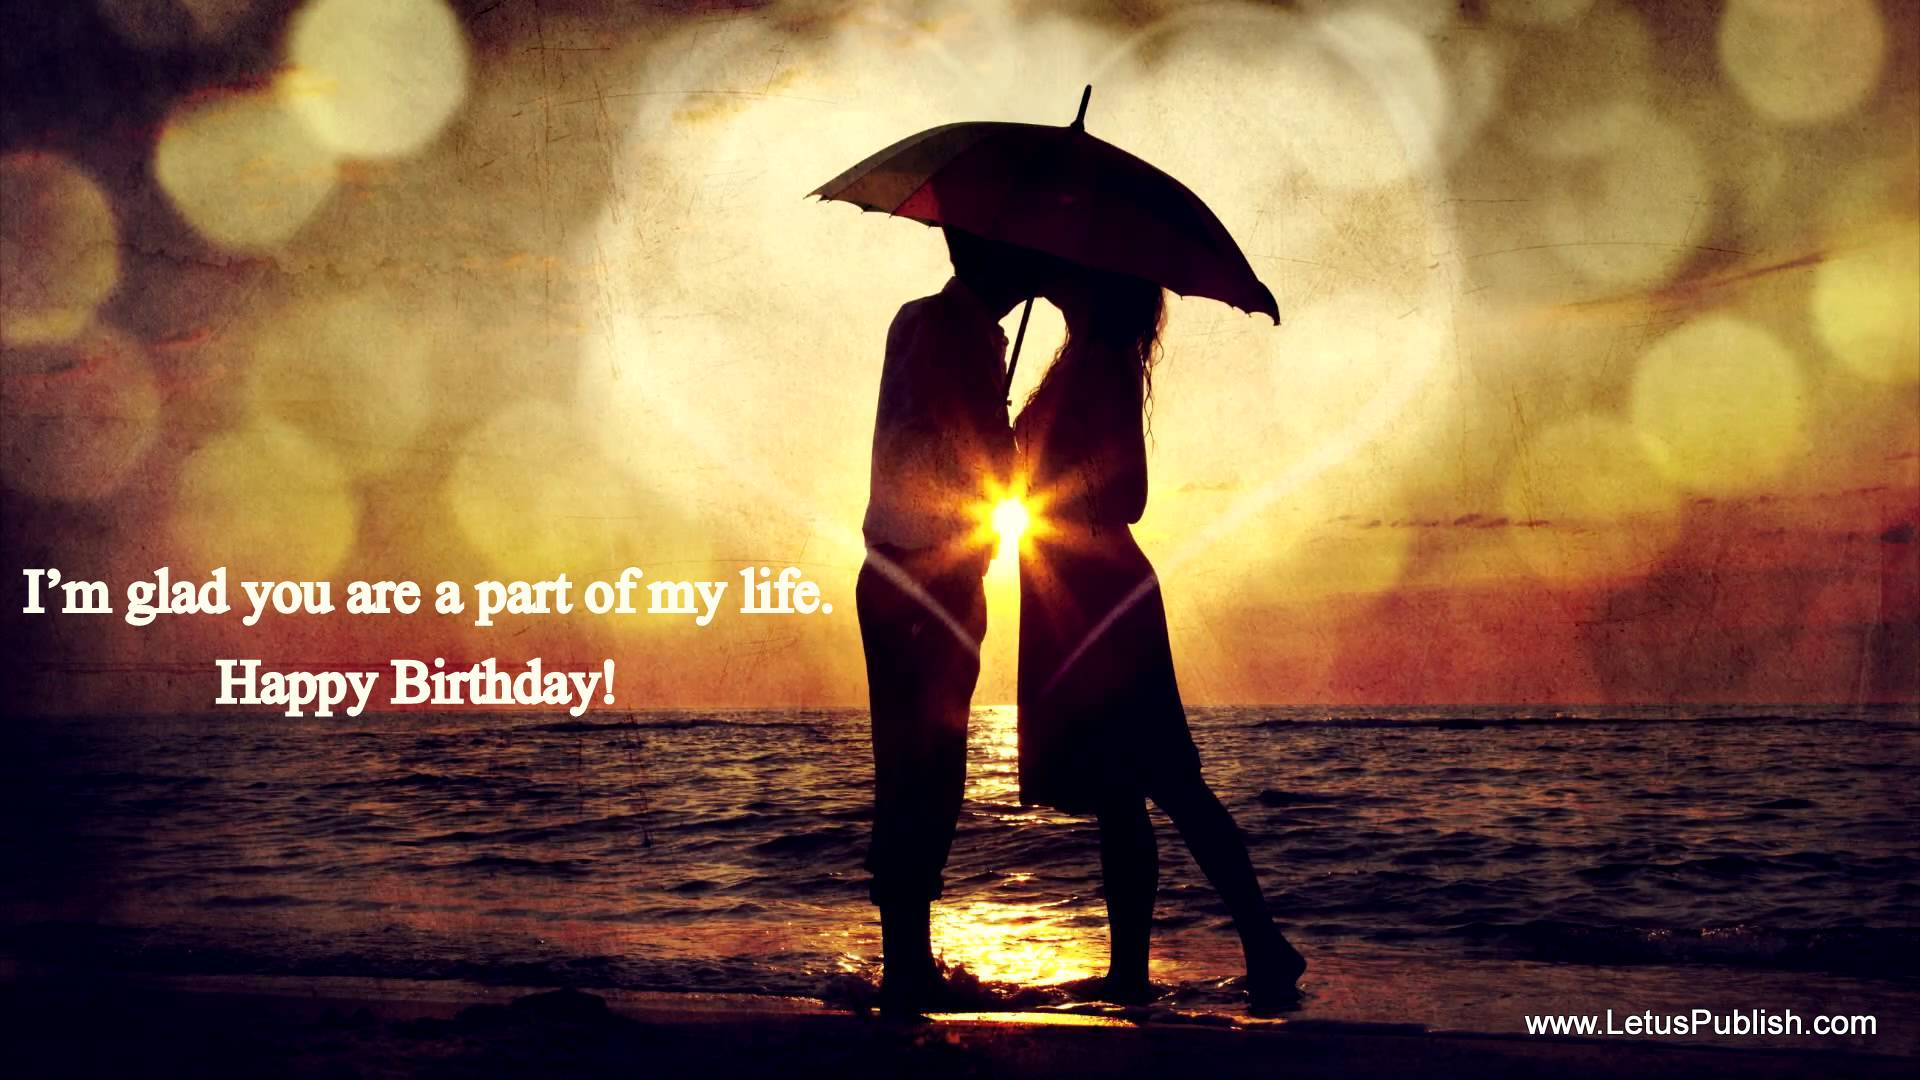 Romantic Birthday walllpaper